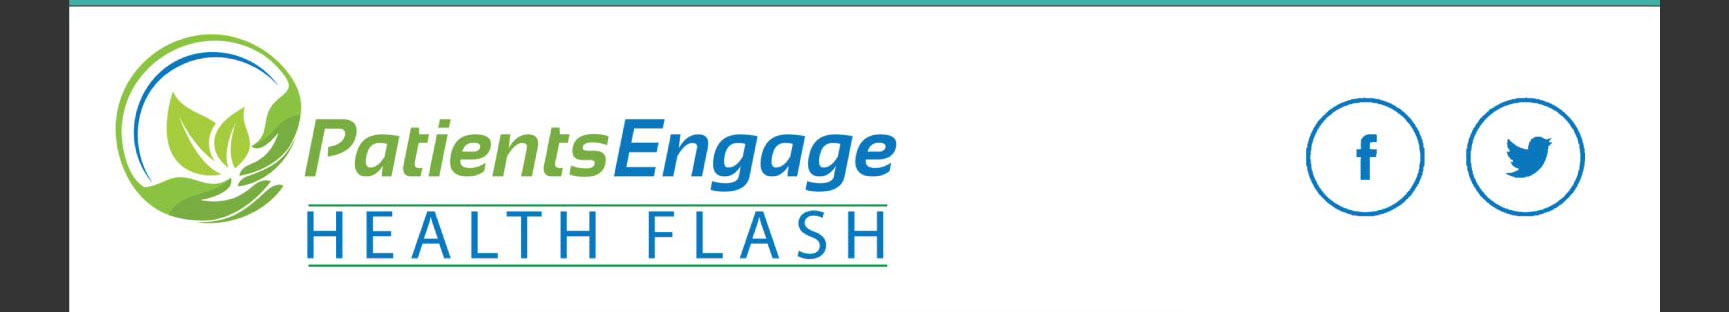 Patients Engage Health flash